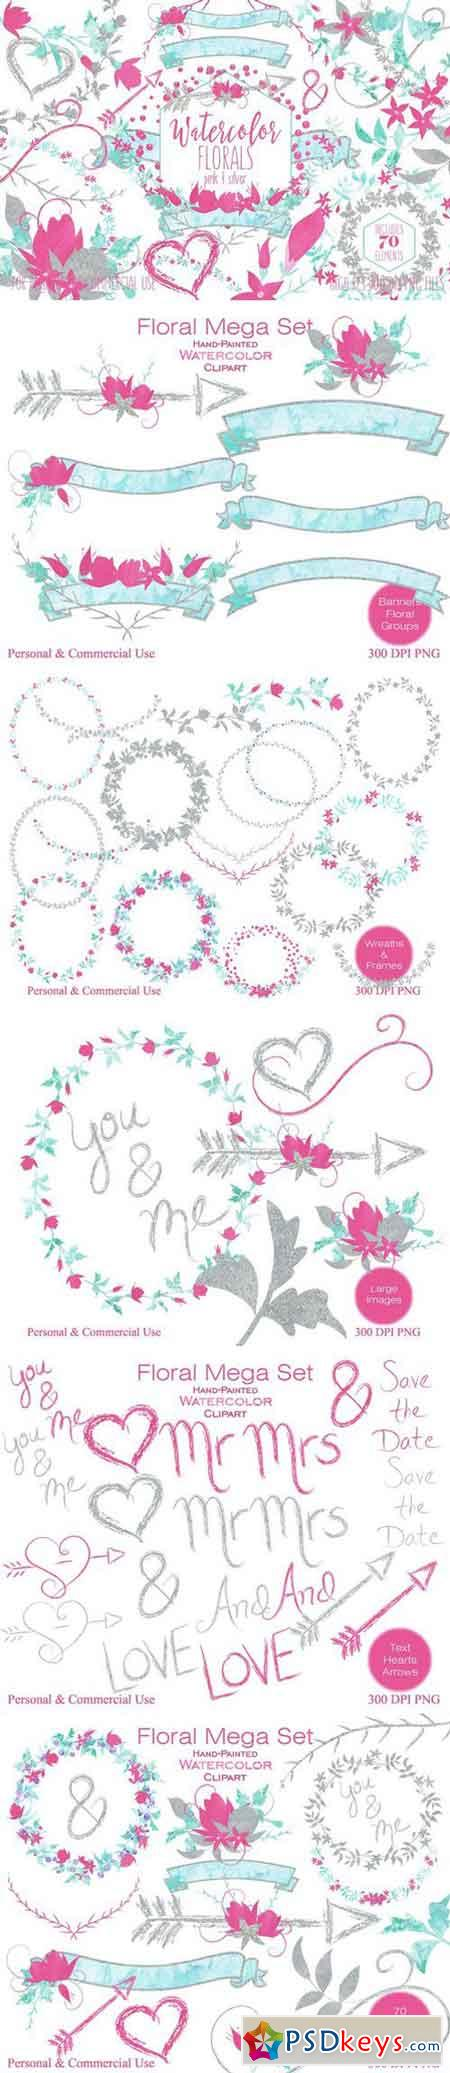 Pink & Silver Watercolor Floral Set 2176133